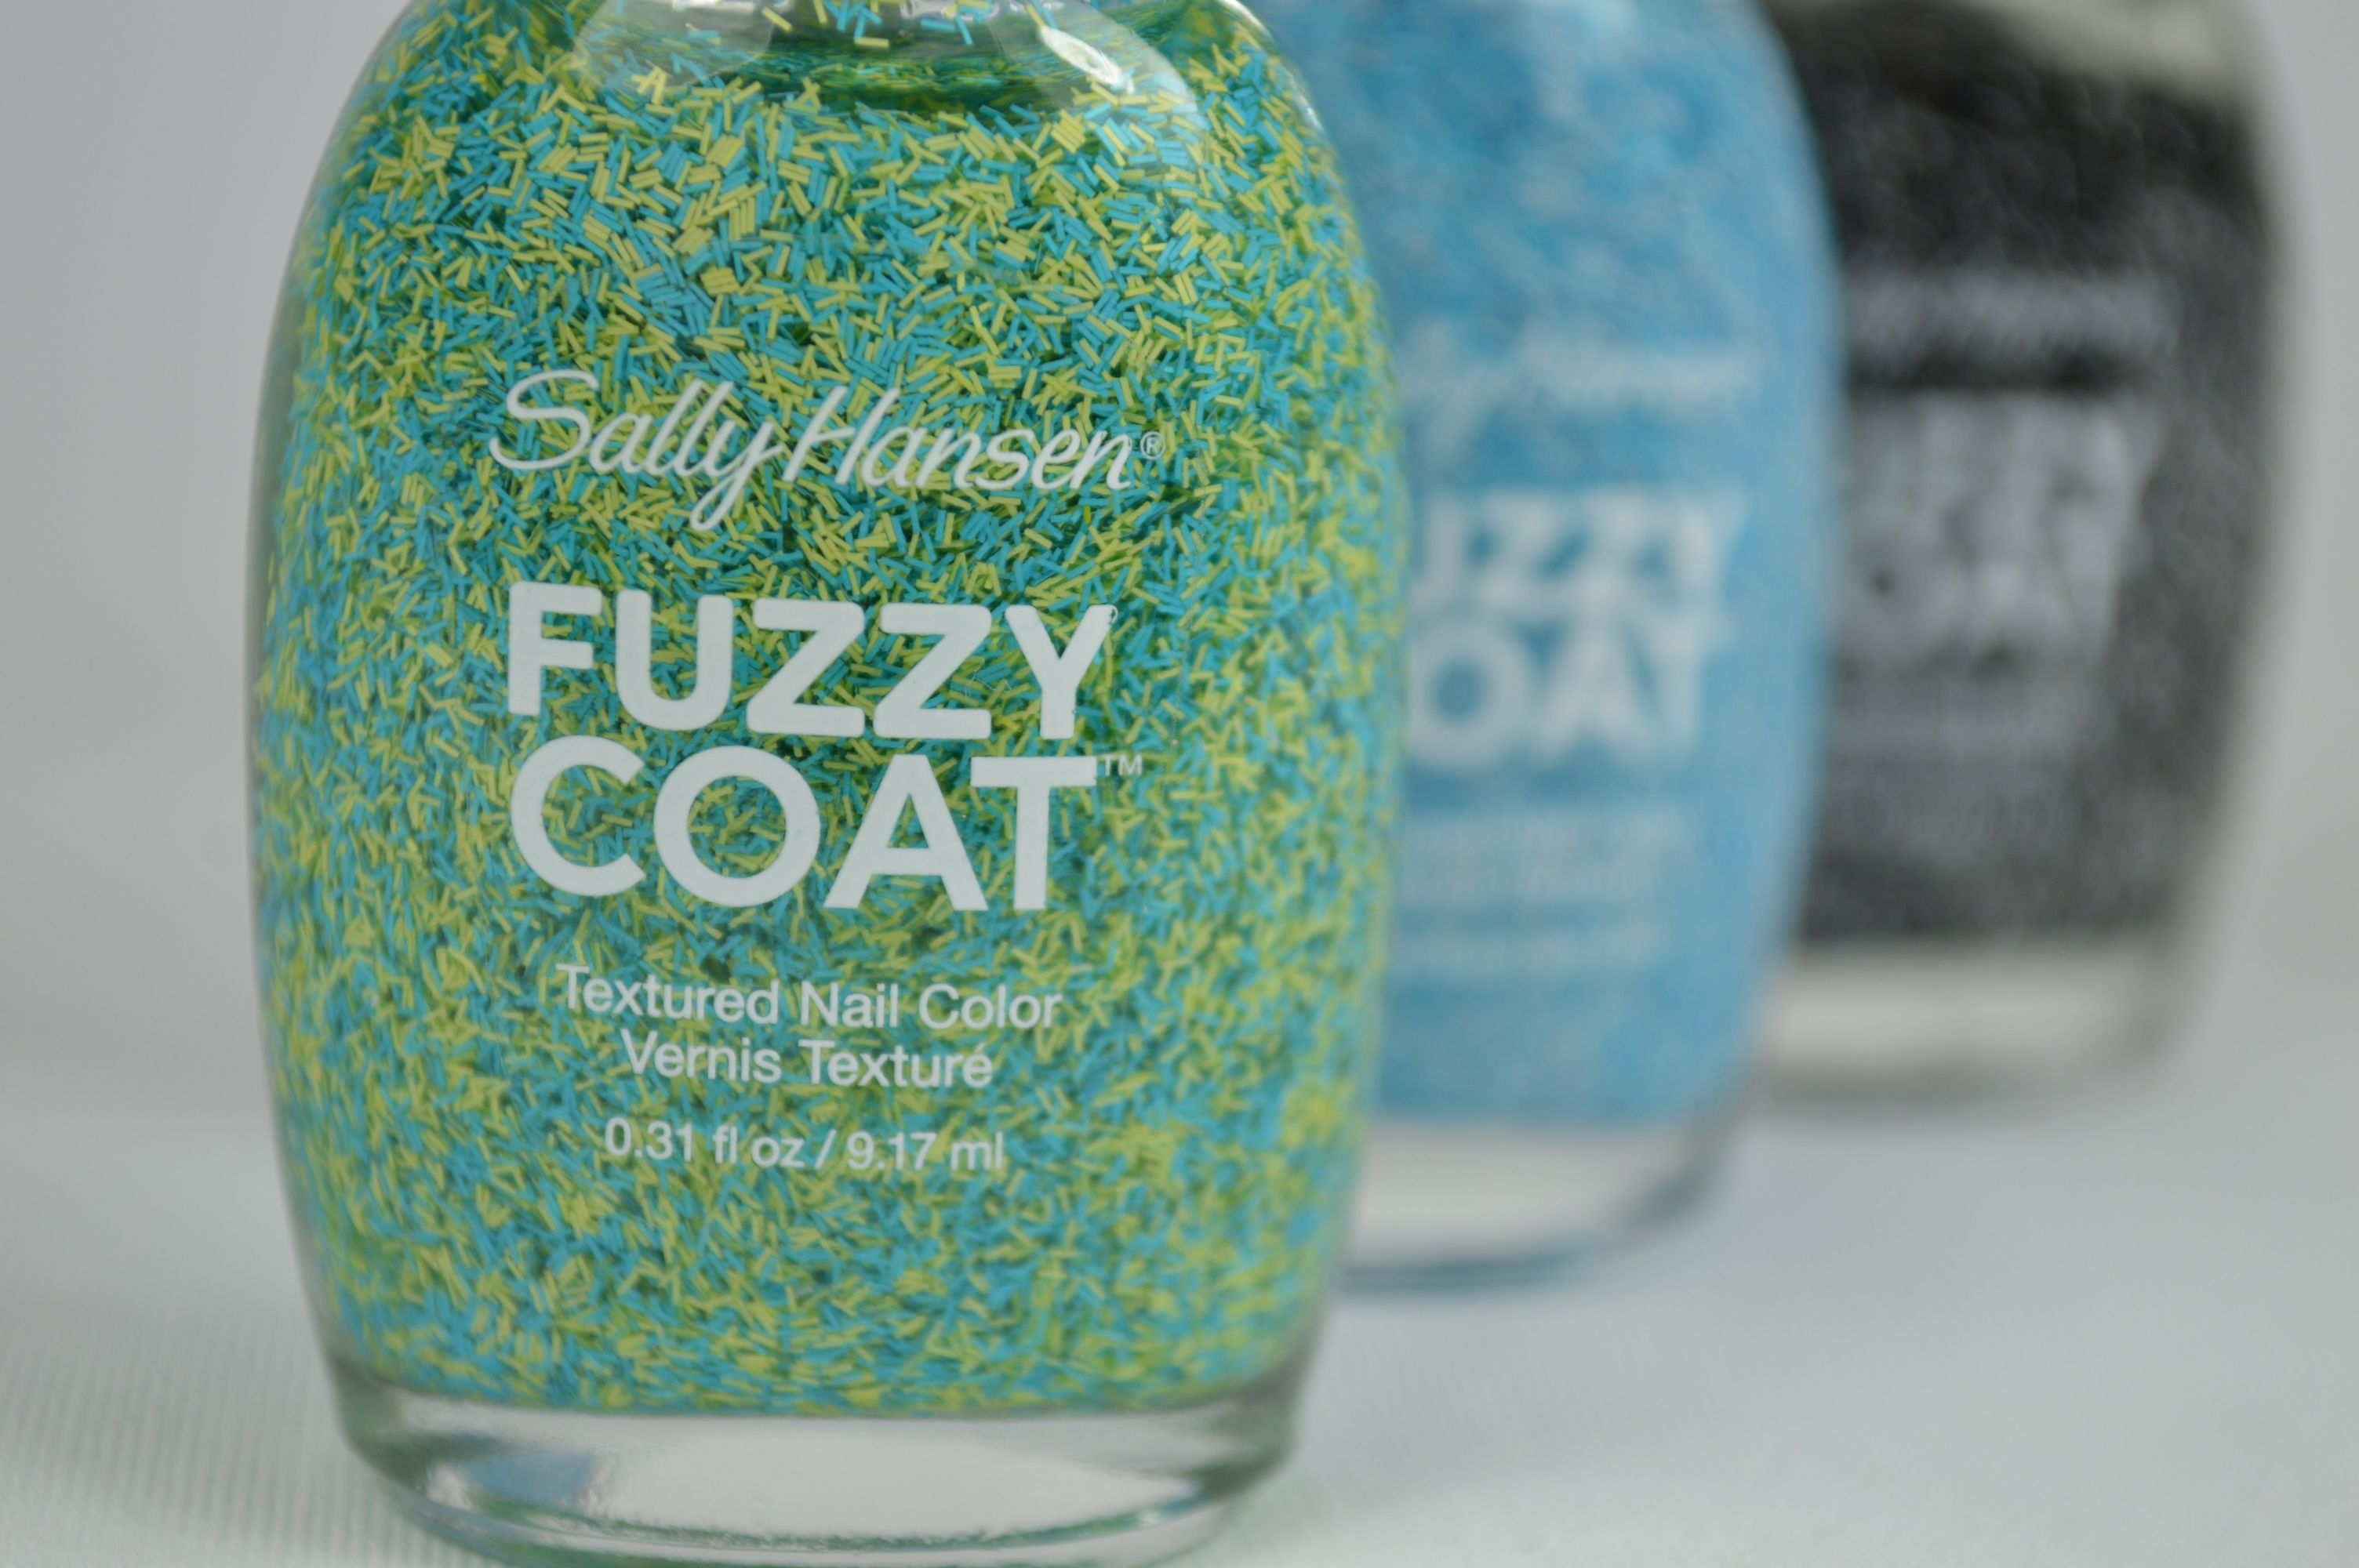 Sally Hansen Nagellack Fuzz-Sea Fuzzy Coat